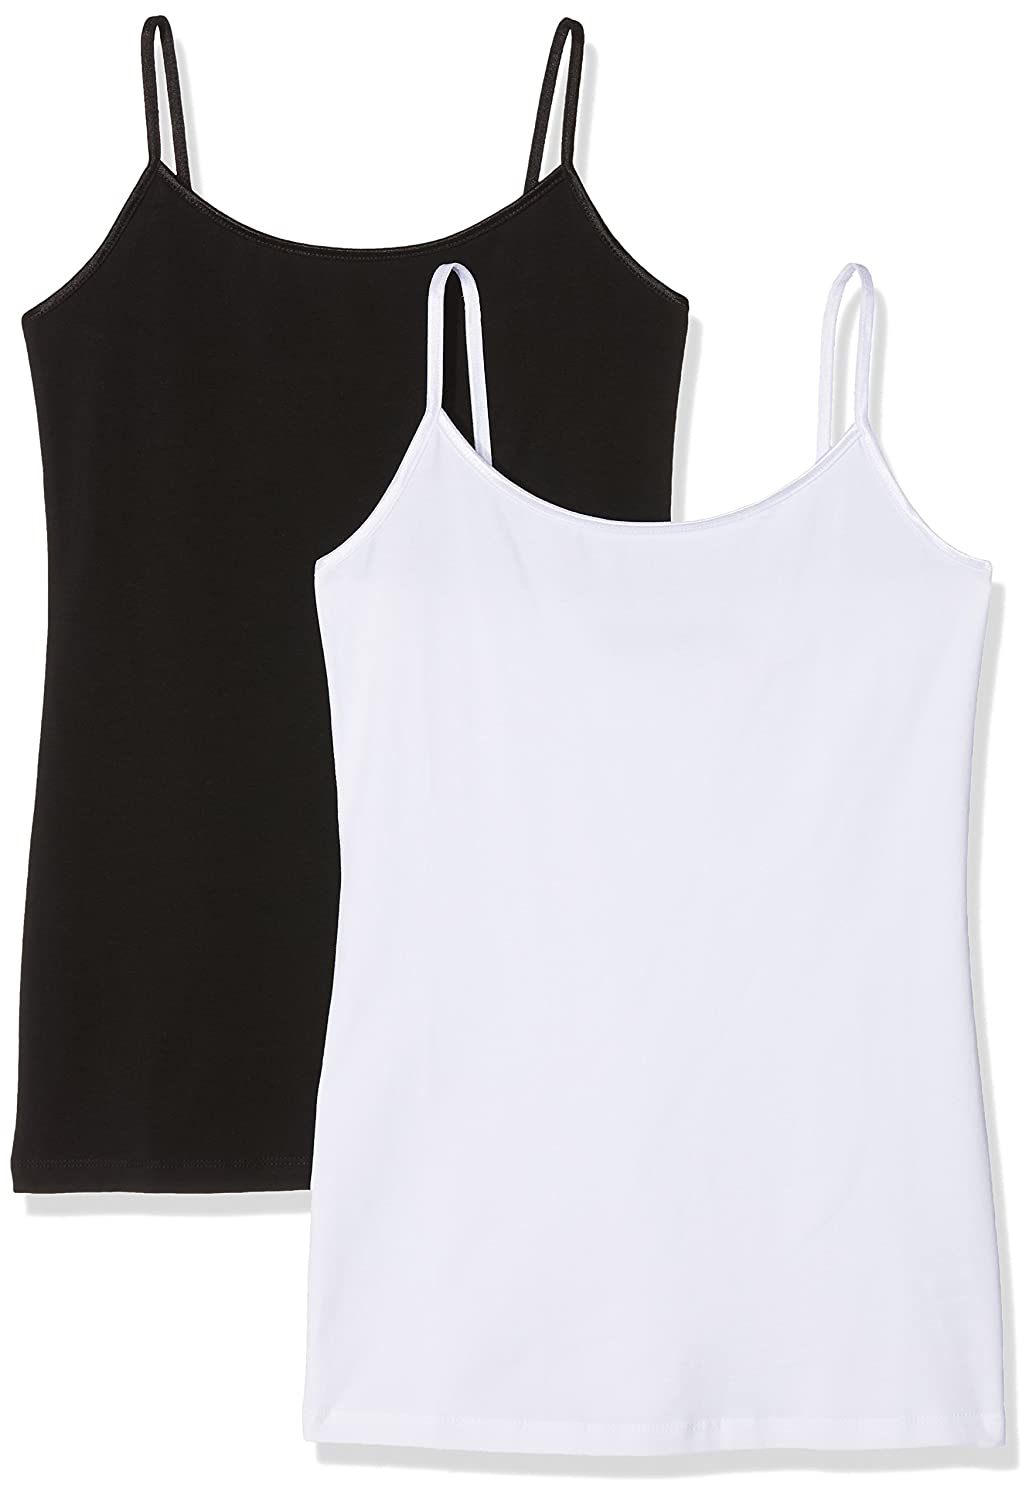 Dorothy Perkins Women's Satin Cami Vest Top 56626530